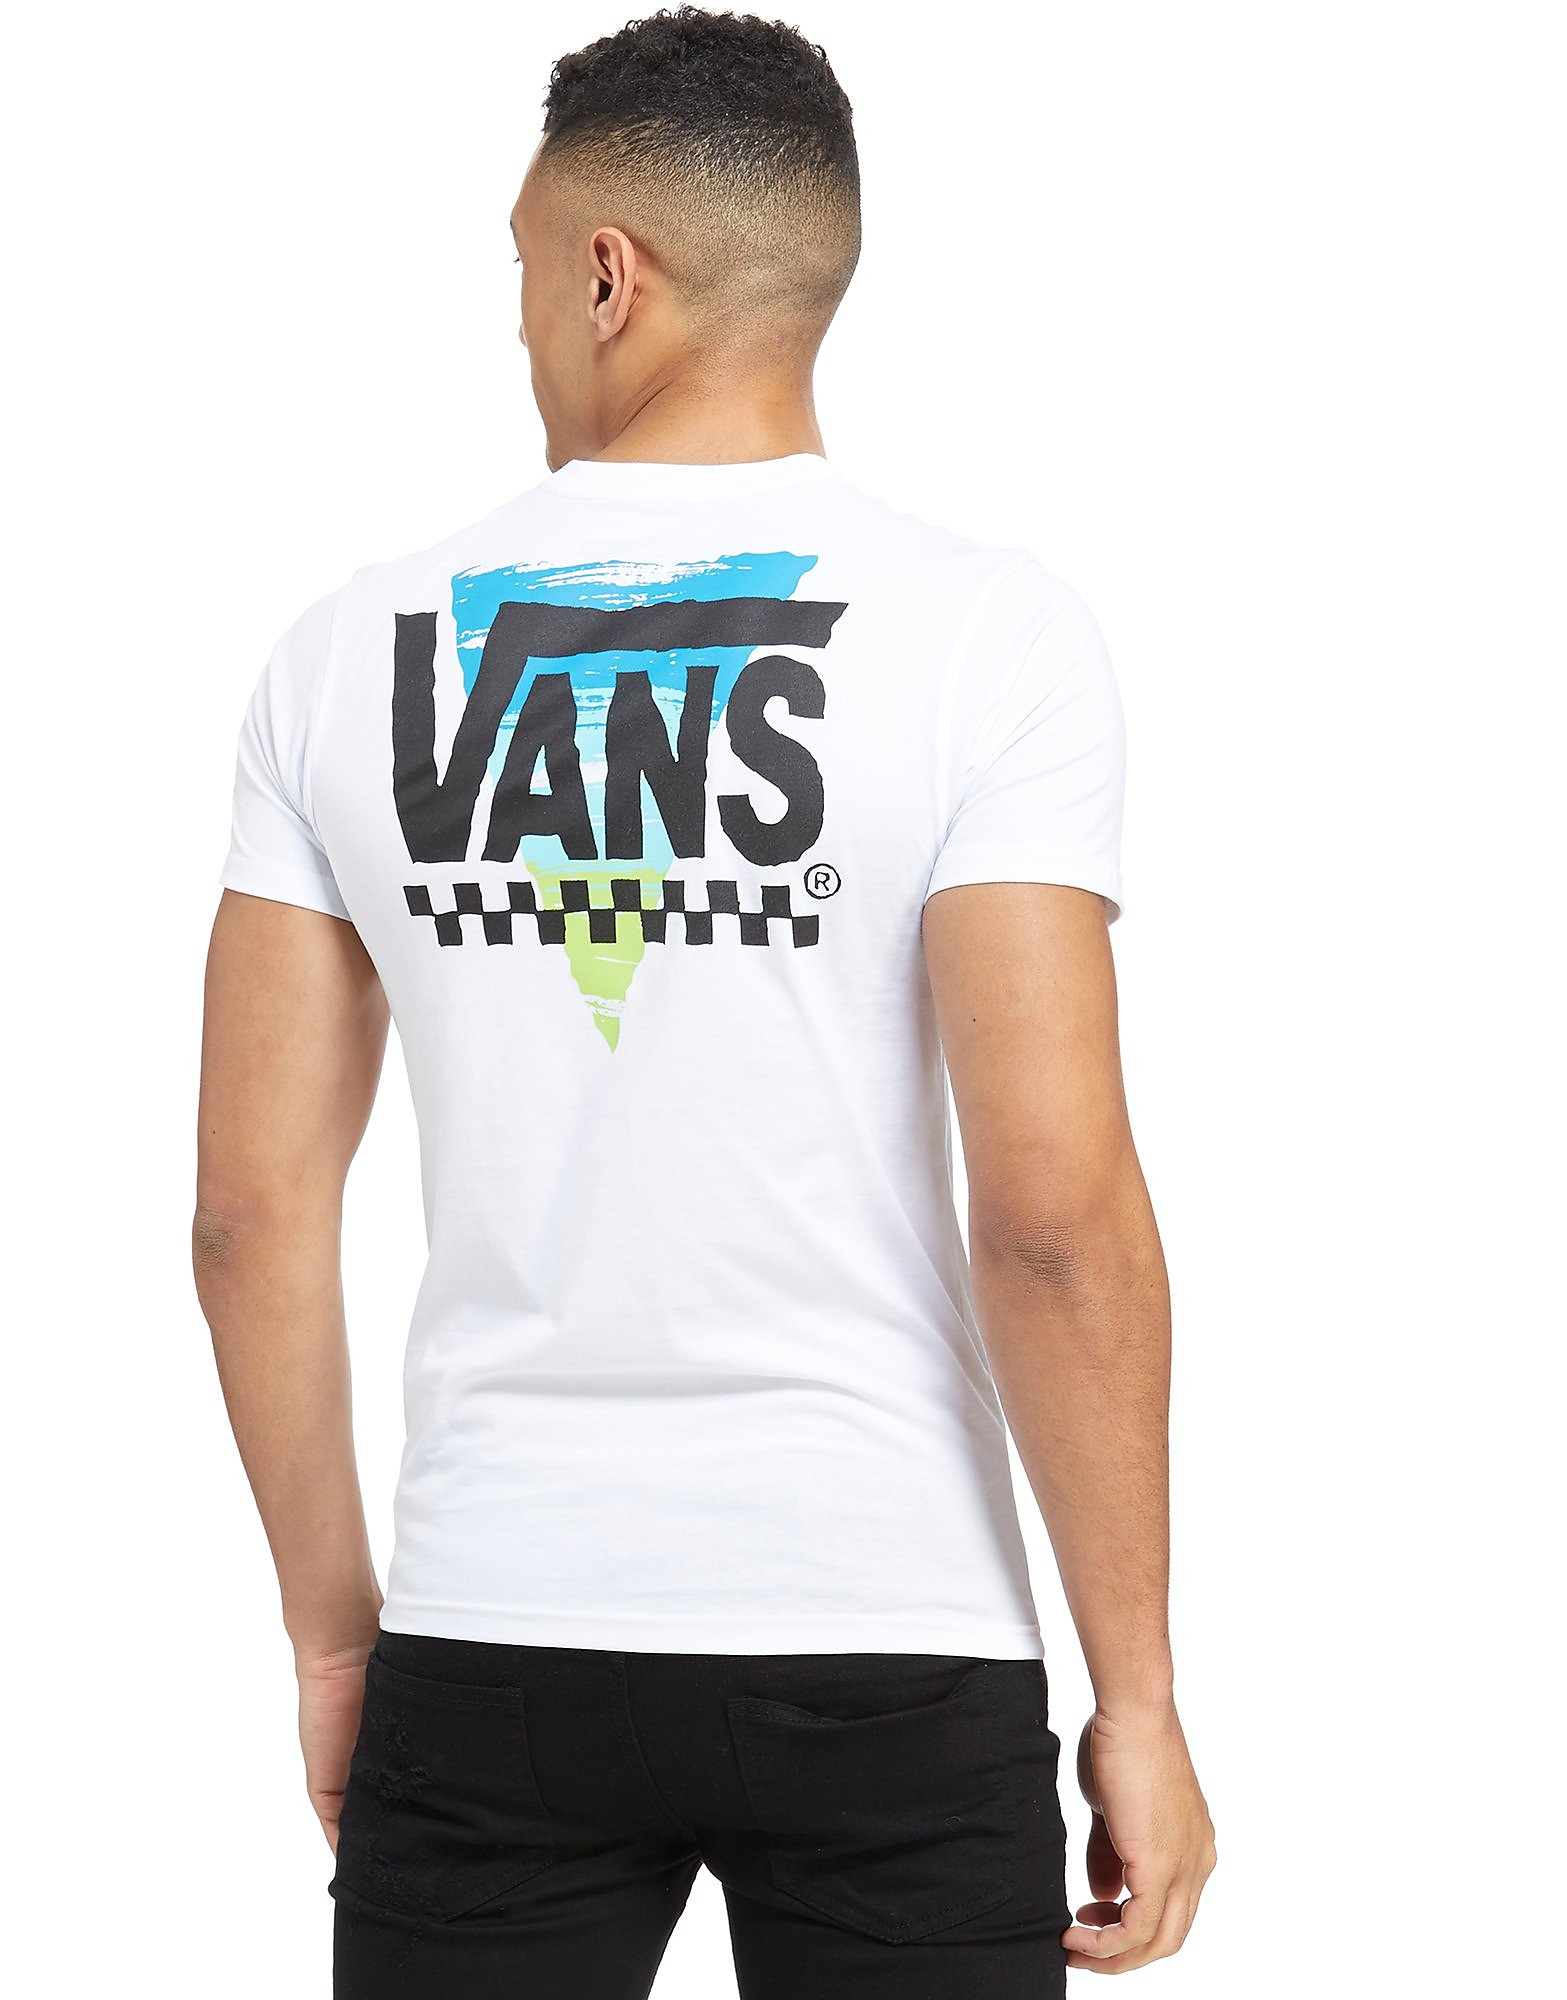 Vans Retro Triangle T-Shirt